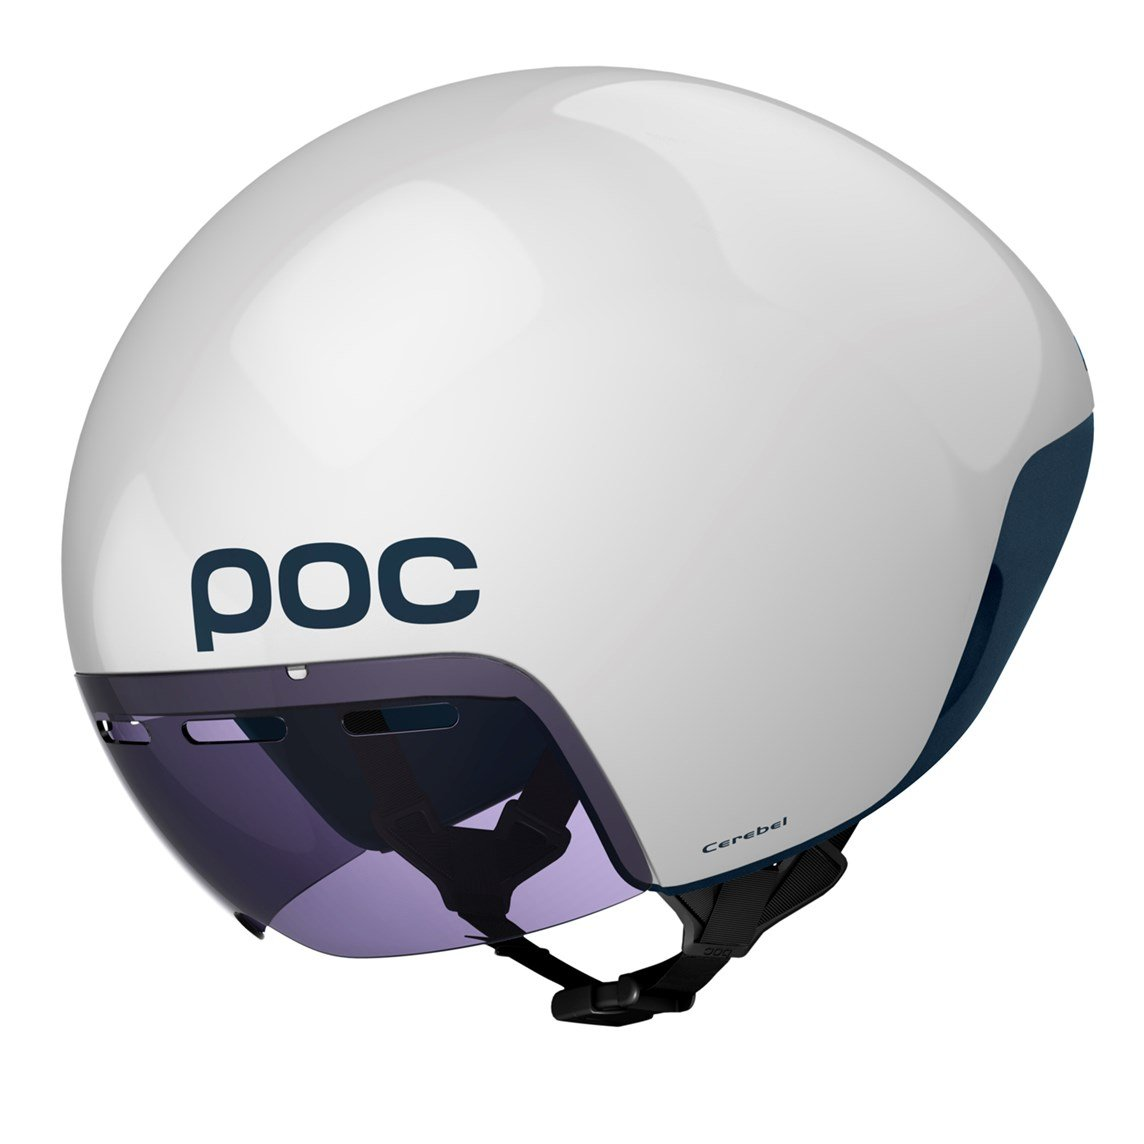 Amazon.com : POC Cerebel (CPSC) Bike Helmet, Hydrogen White, Medium : Sports & Outdoors